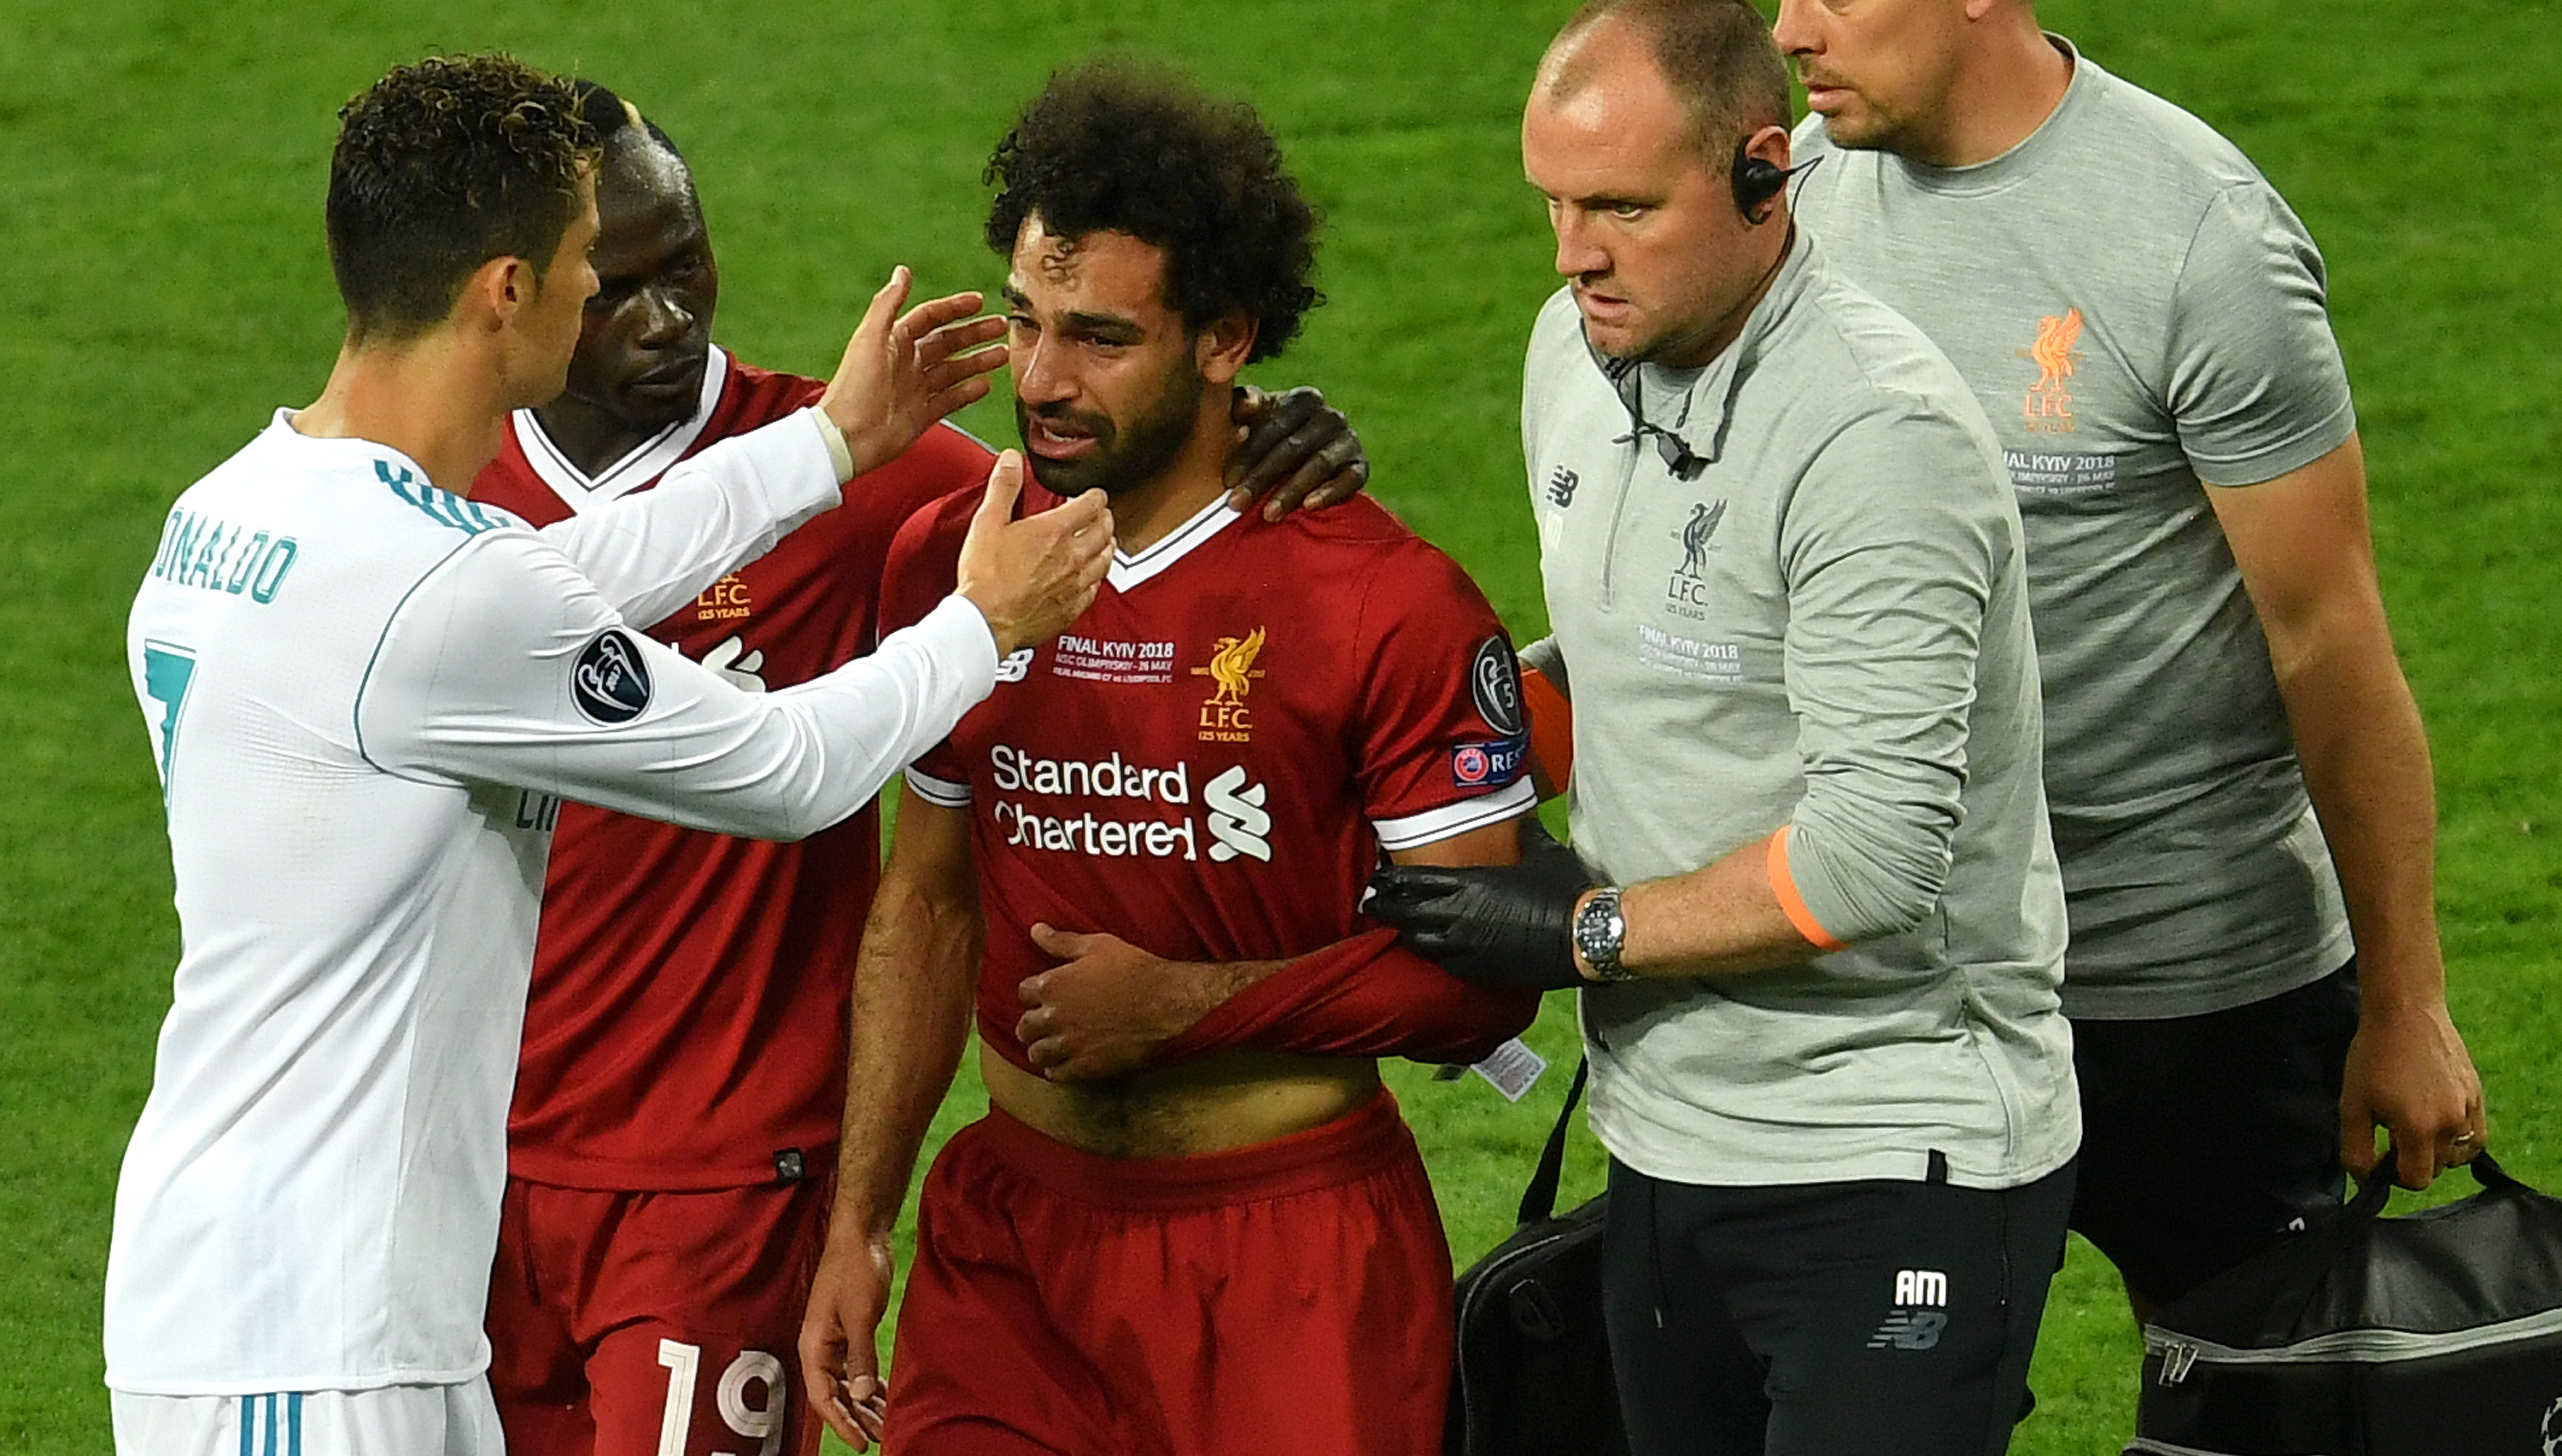 People hilariously roast Sergio Ramos after Mo Salah's injury